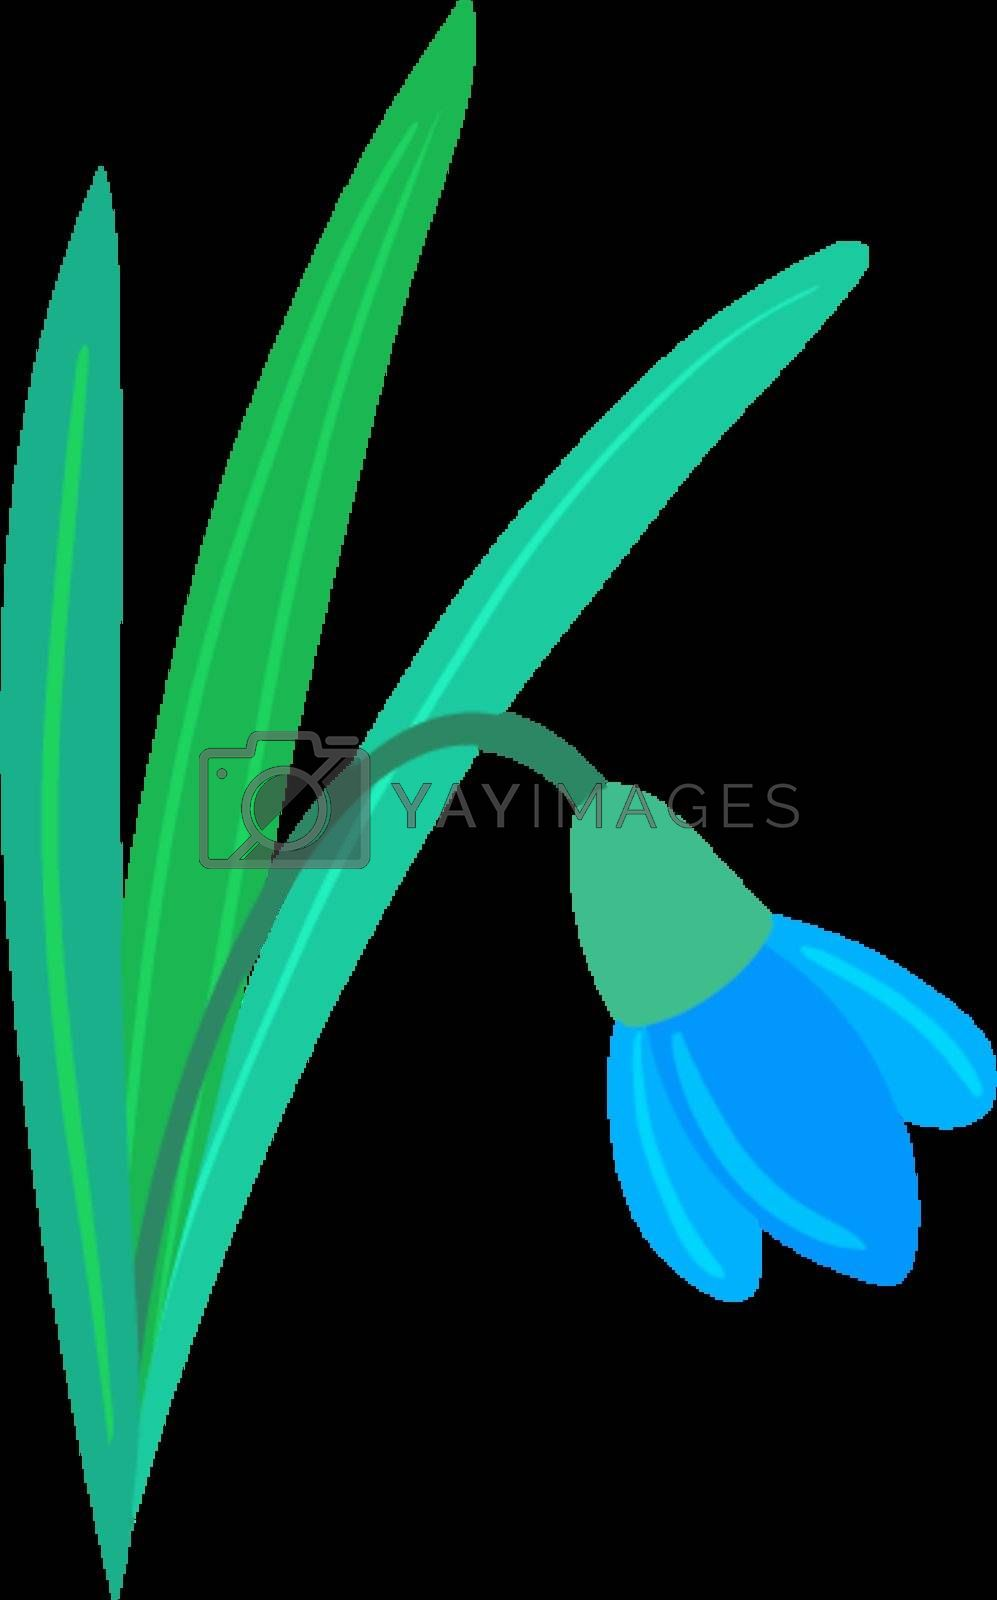 Royalty free image of Snowdrop by Perysty